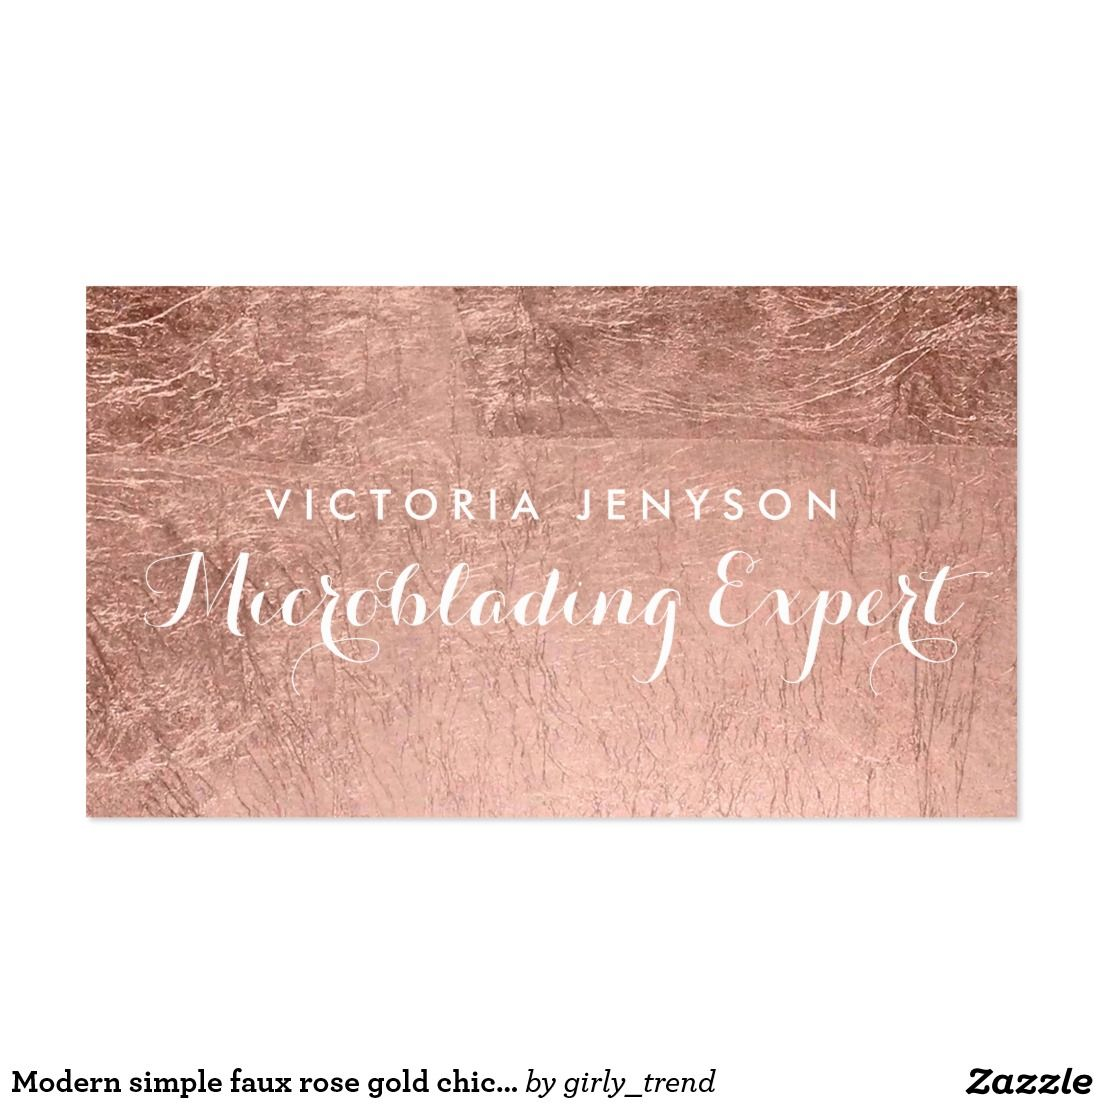 Modern simple faux rose gold chic Microblading Business Card ...